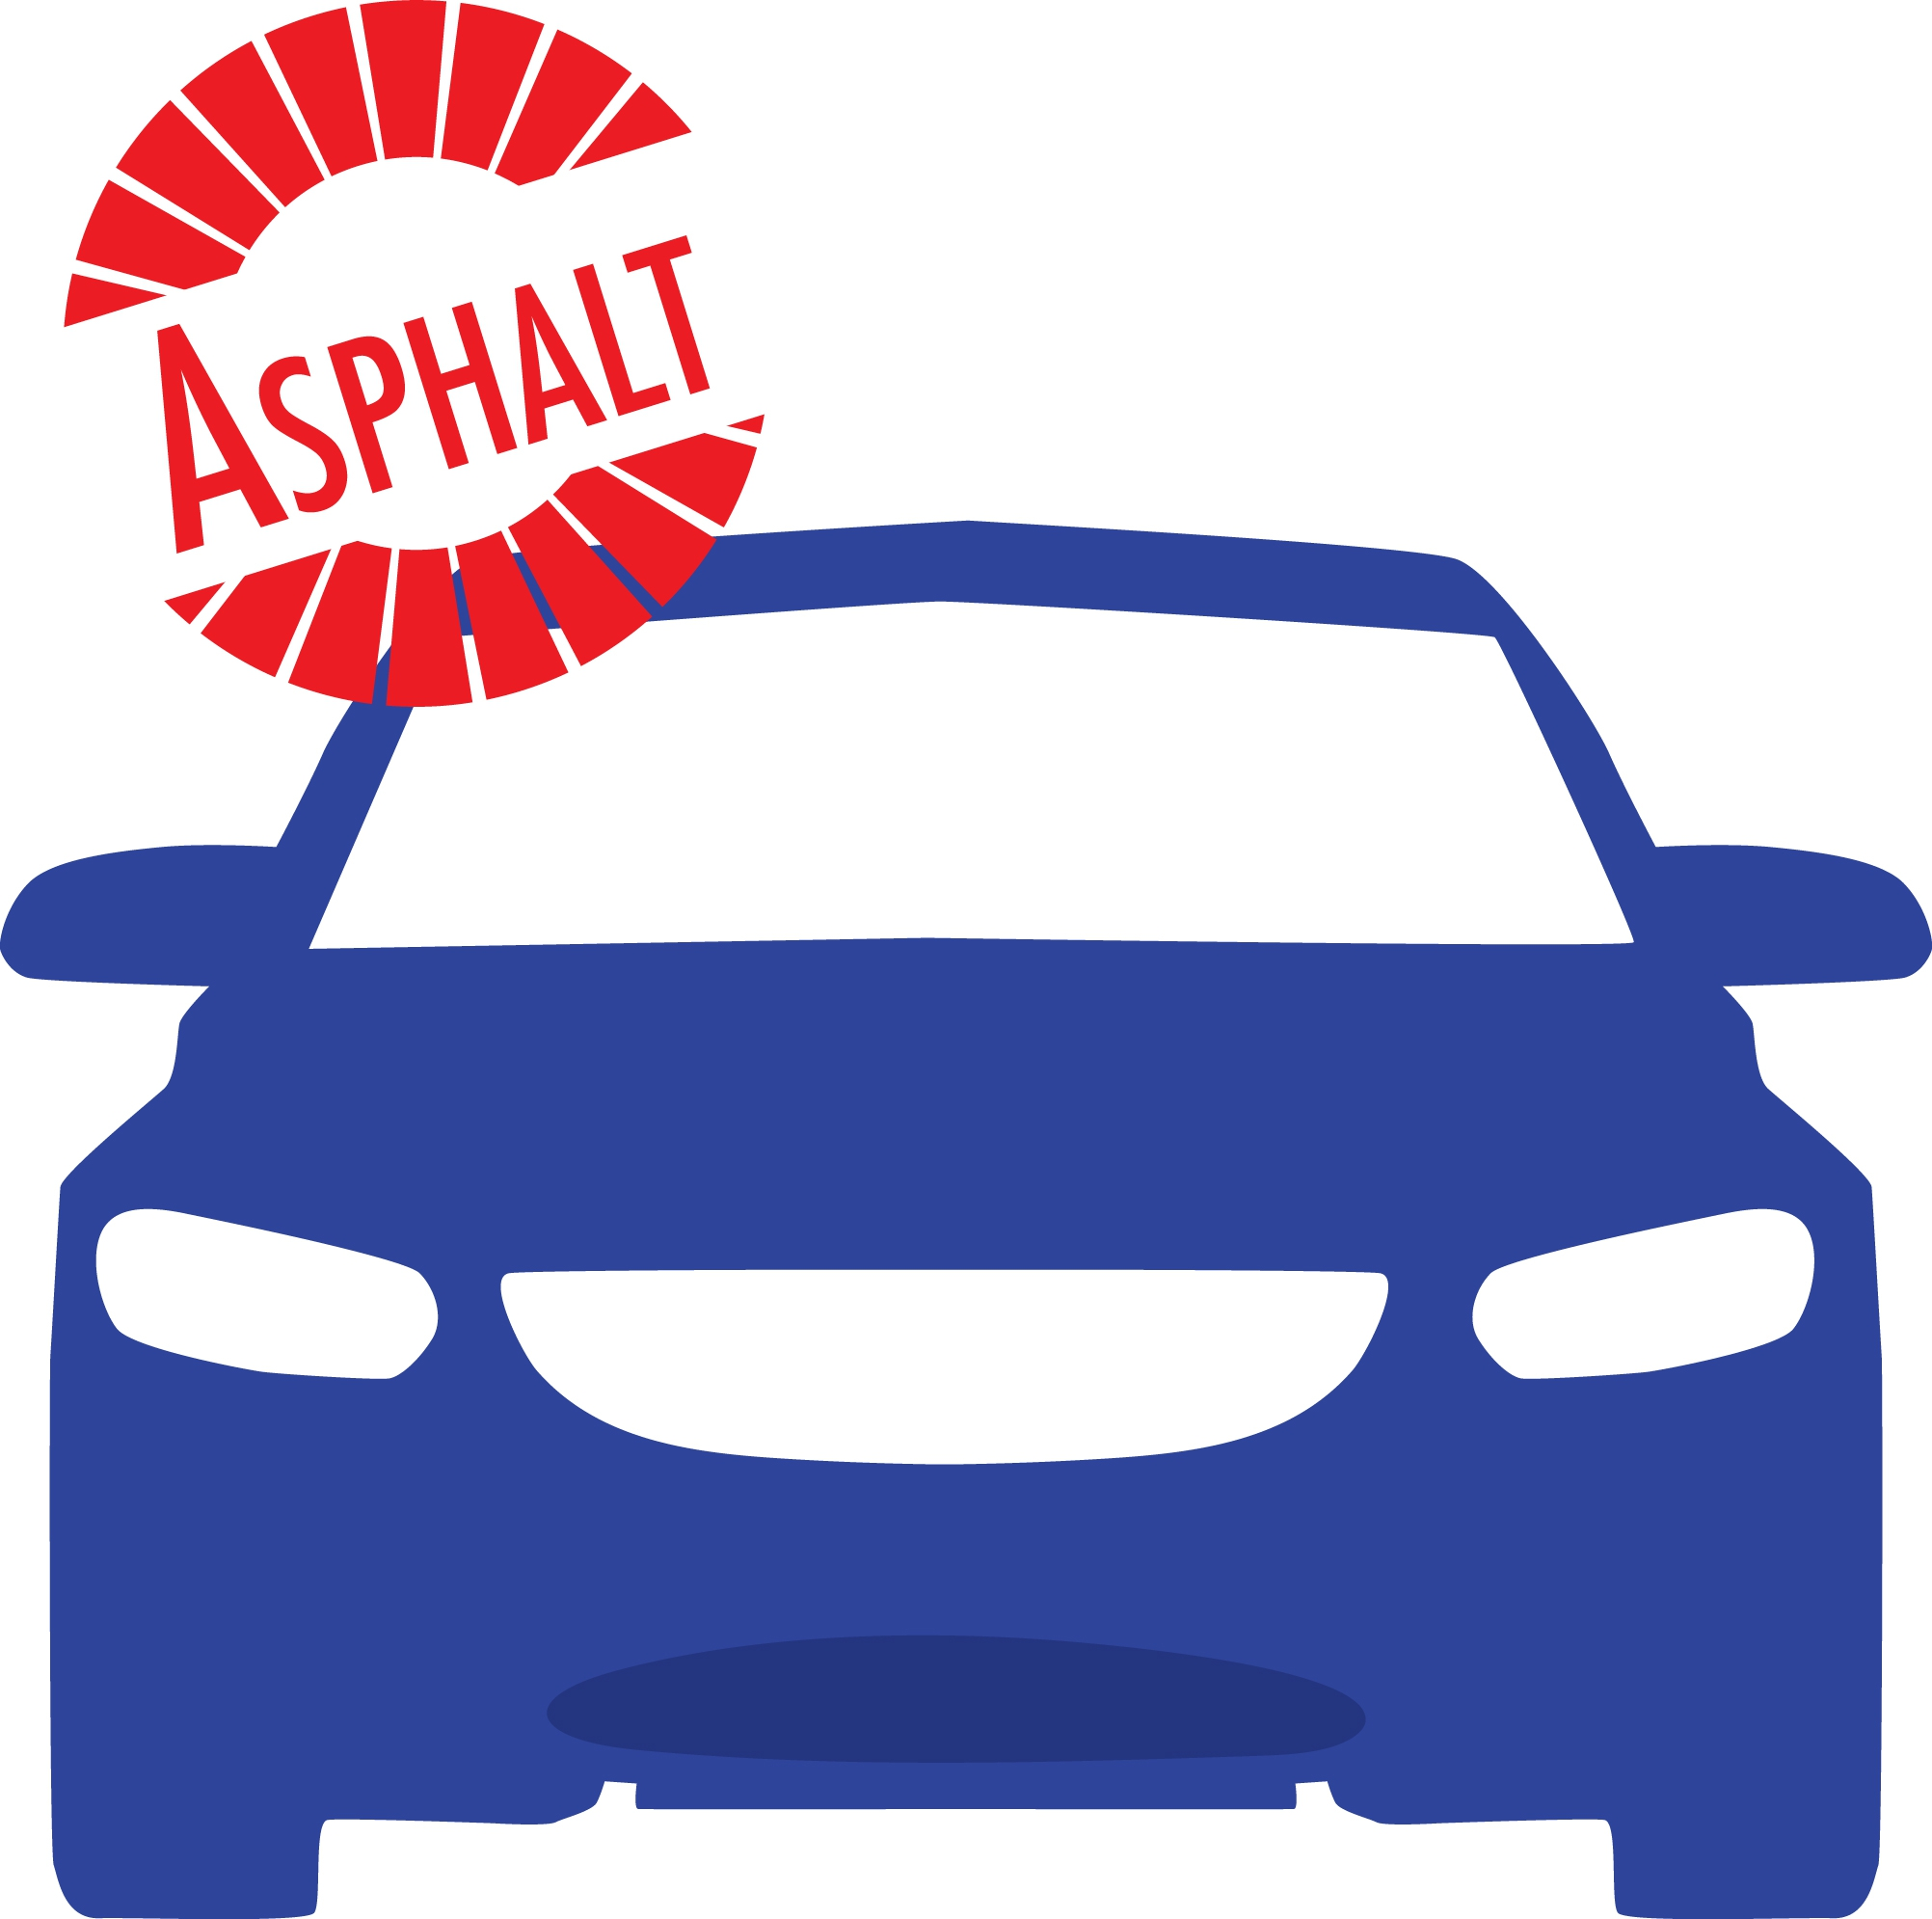 Asphalt Based Automotive Undercoatings